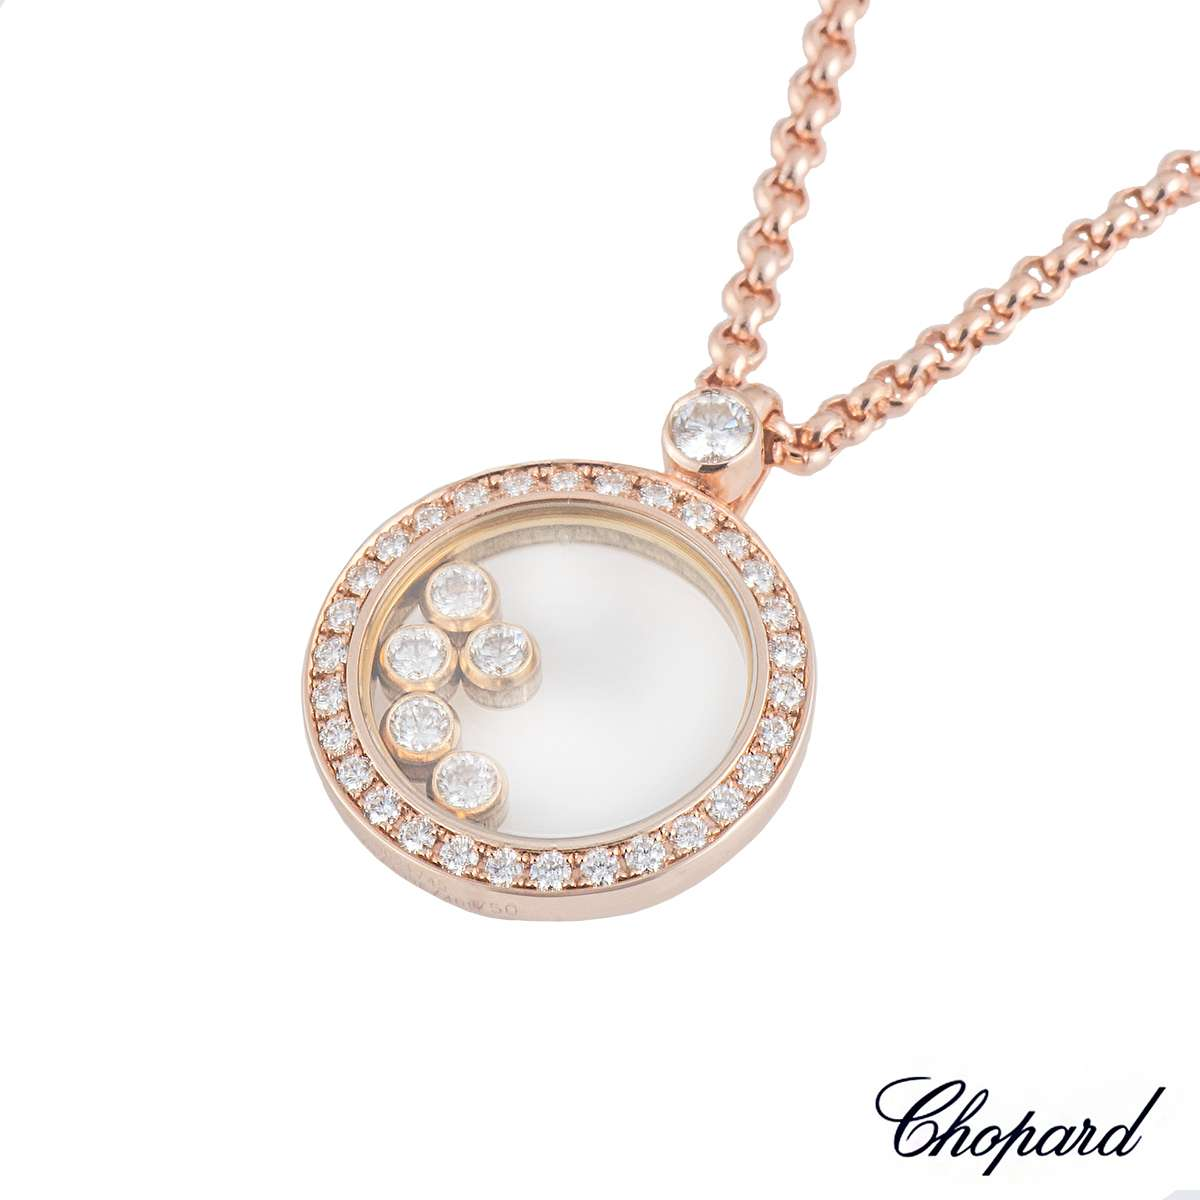 Chopard happy diamonds rose gold pendant rich diamonds of bond street chopard happy diamonds rose gold pendant aloadofball Gallery